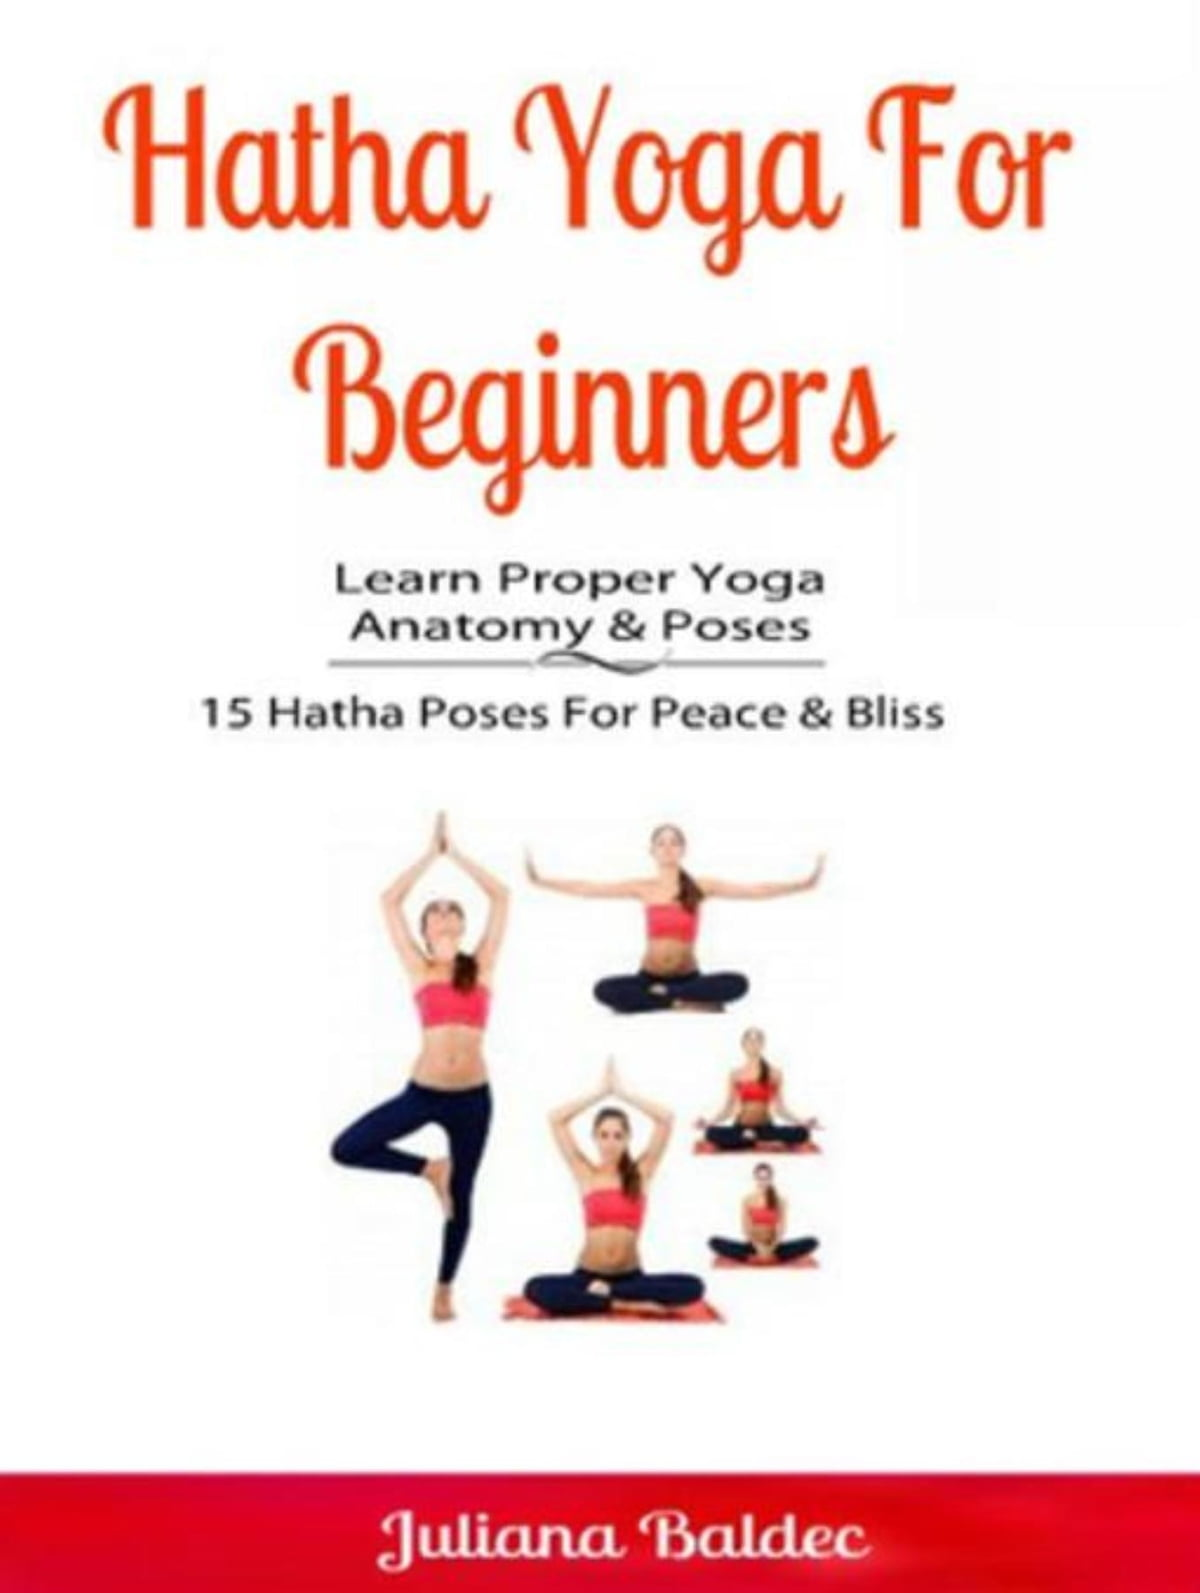 Hatha Yoga For Beginners Learn Proper Yoga Anatomy Poses Ebook By Juliana Baldec Rakuten Kobo